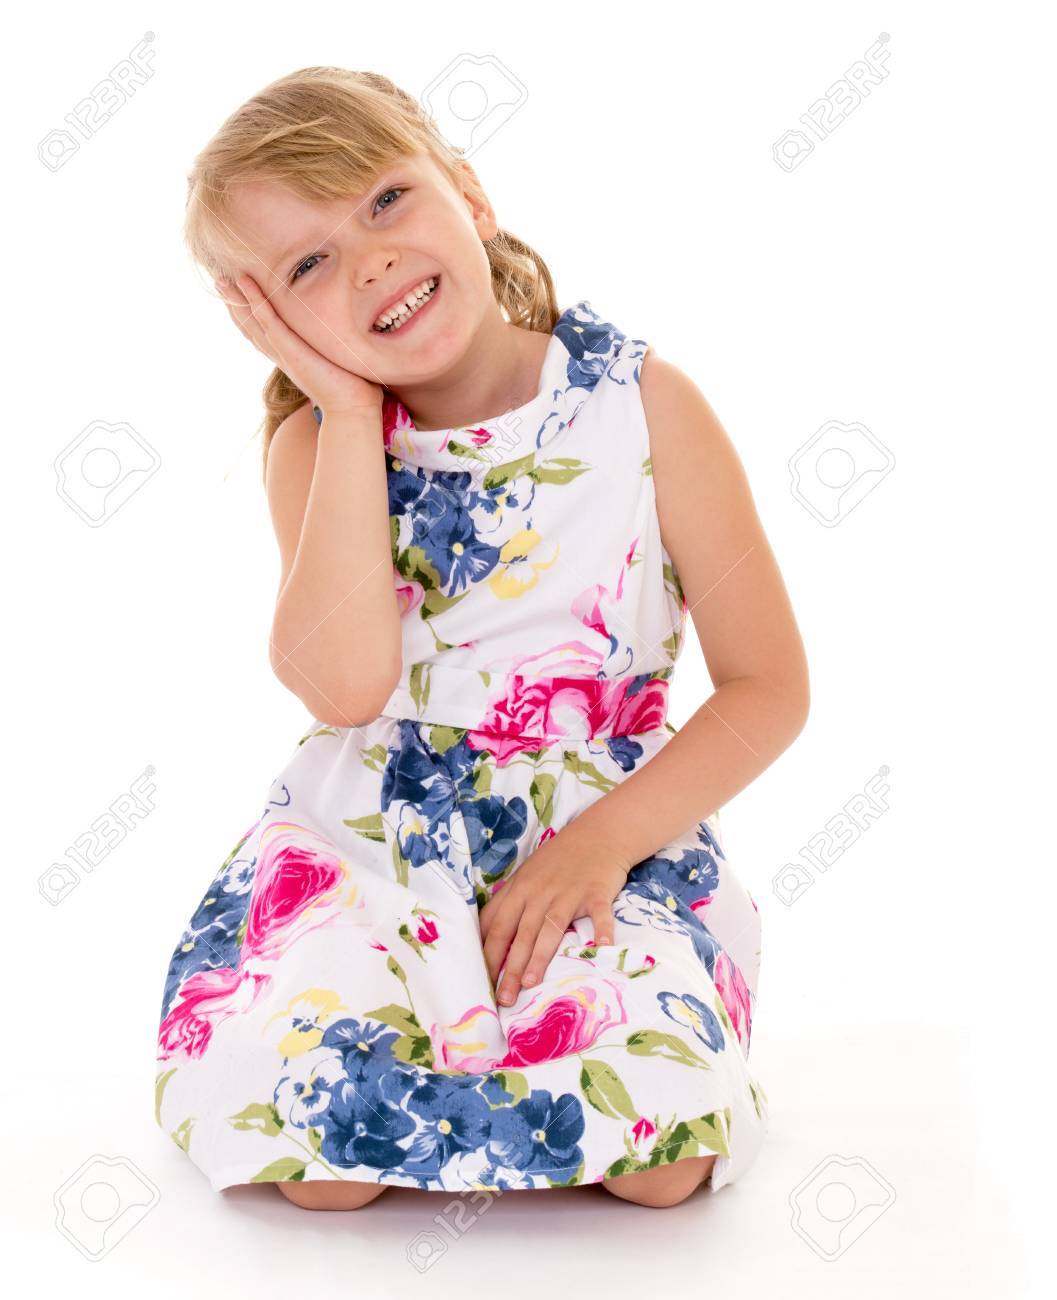 Soulful Young Girl Put Her Hand To His Ear Isolated On White 1057x1300